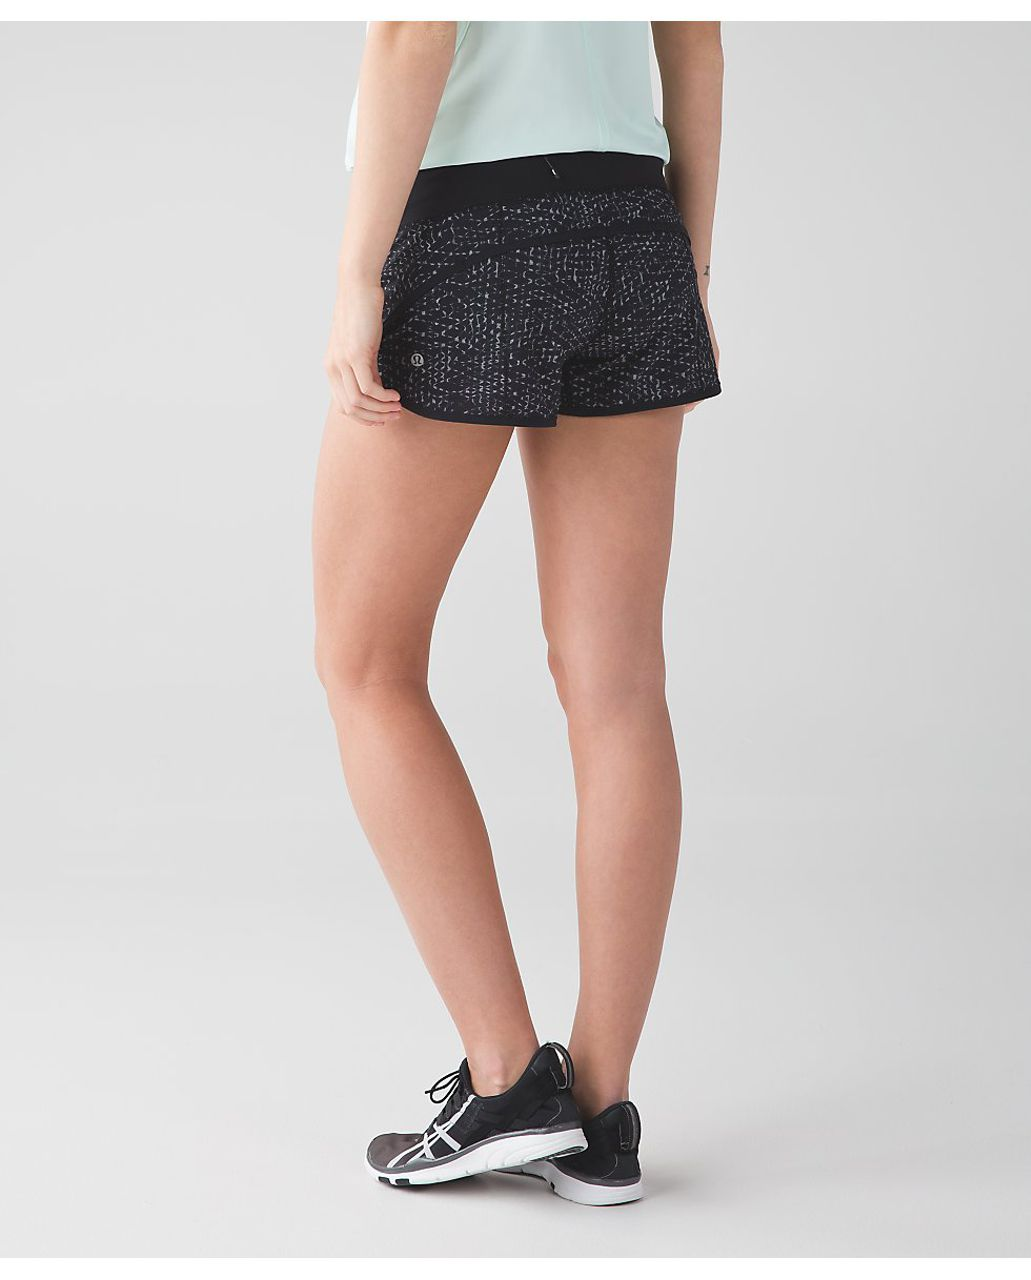 Lululemon Speed Short *4-way Stretch - Samba Snake Battleship Black / Black